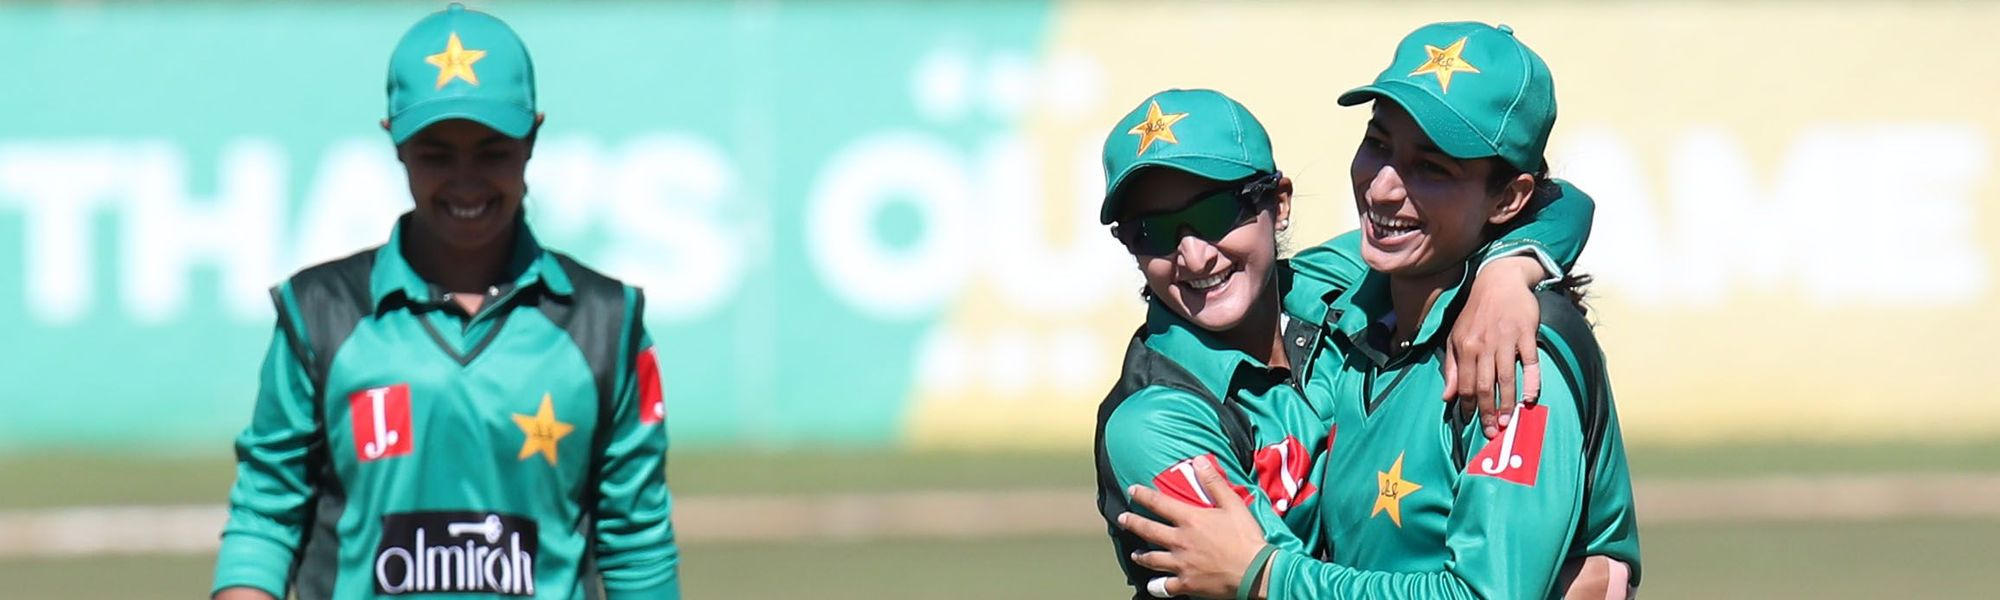 Pakistan shone with the ball, as Sana Mir returned match-winning figures of 4/11